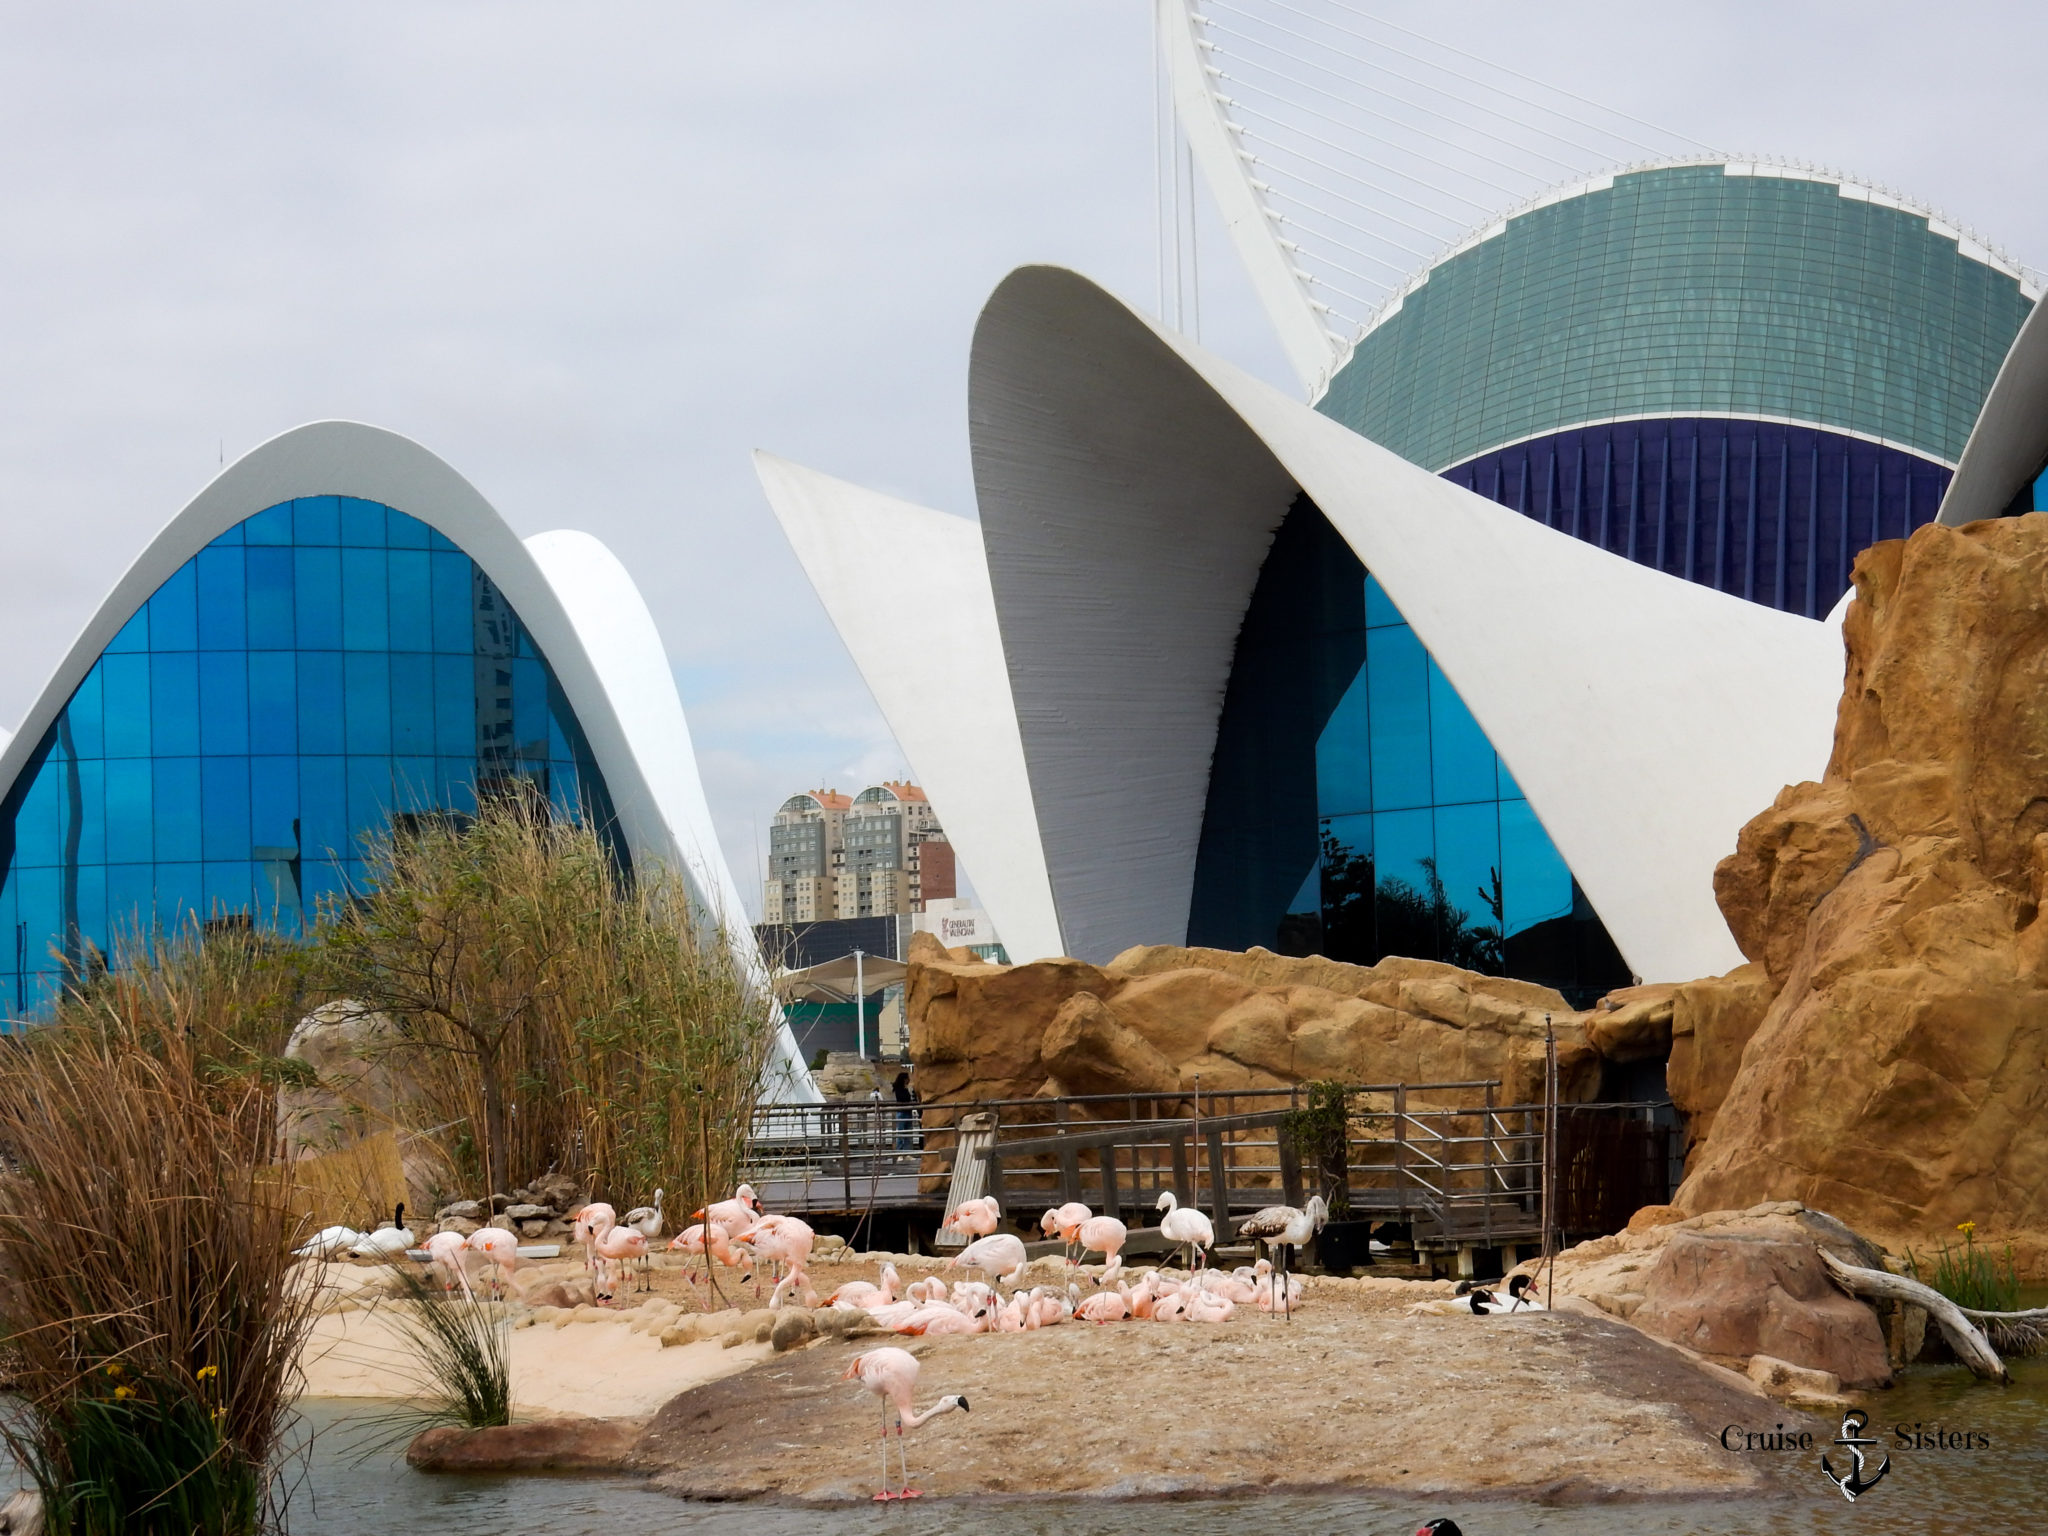 Oceanografic Aquarium in Valencia